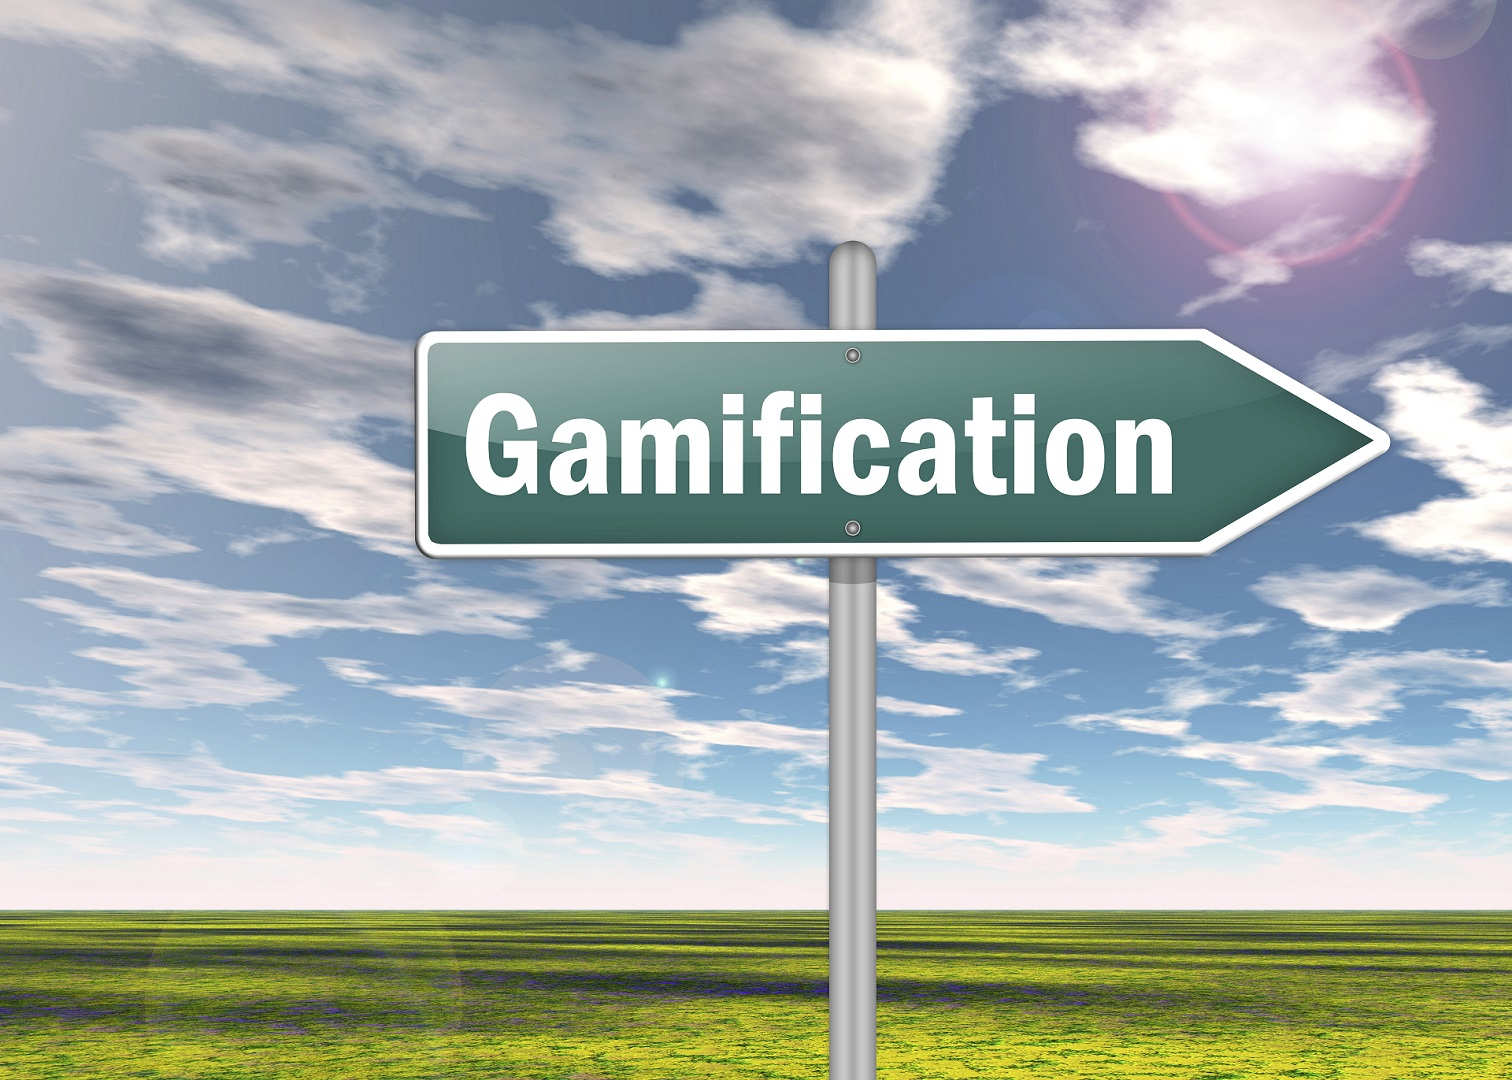 Gamification Takes Learning to a New Level in the Contact Center